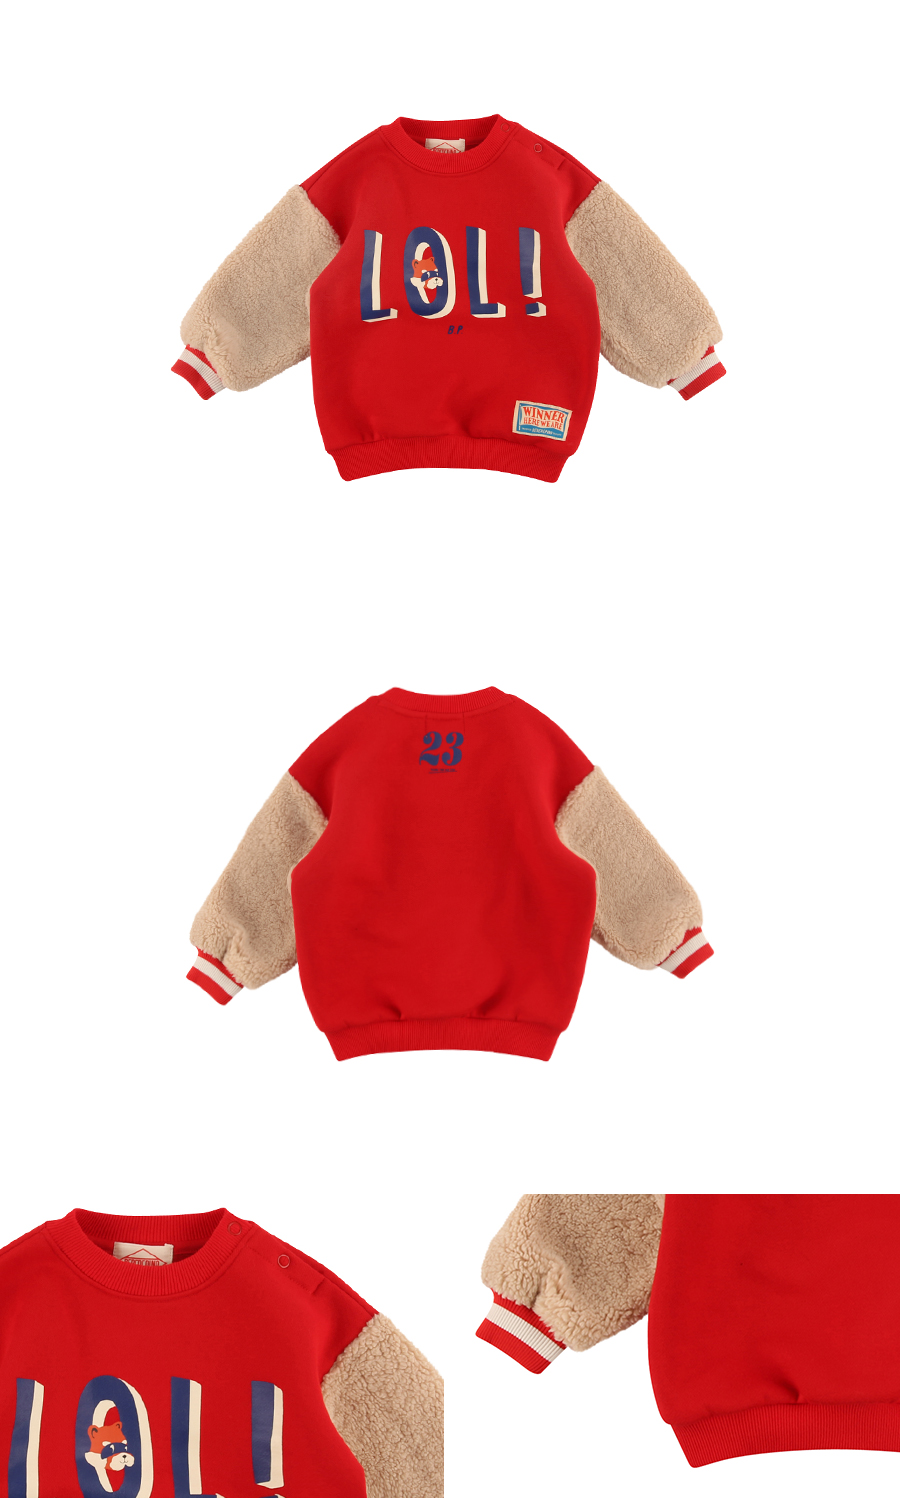 Lol baby dumble fur sleeve sweatshirts 상세 이미지